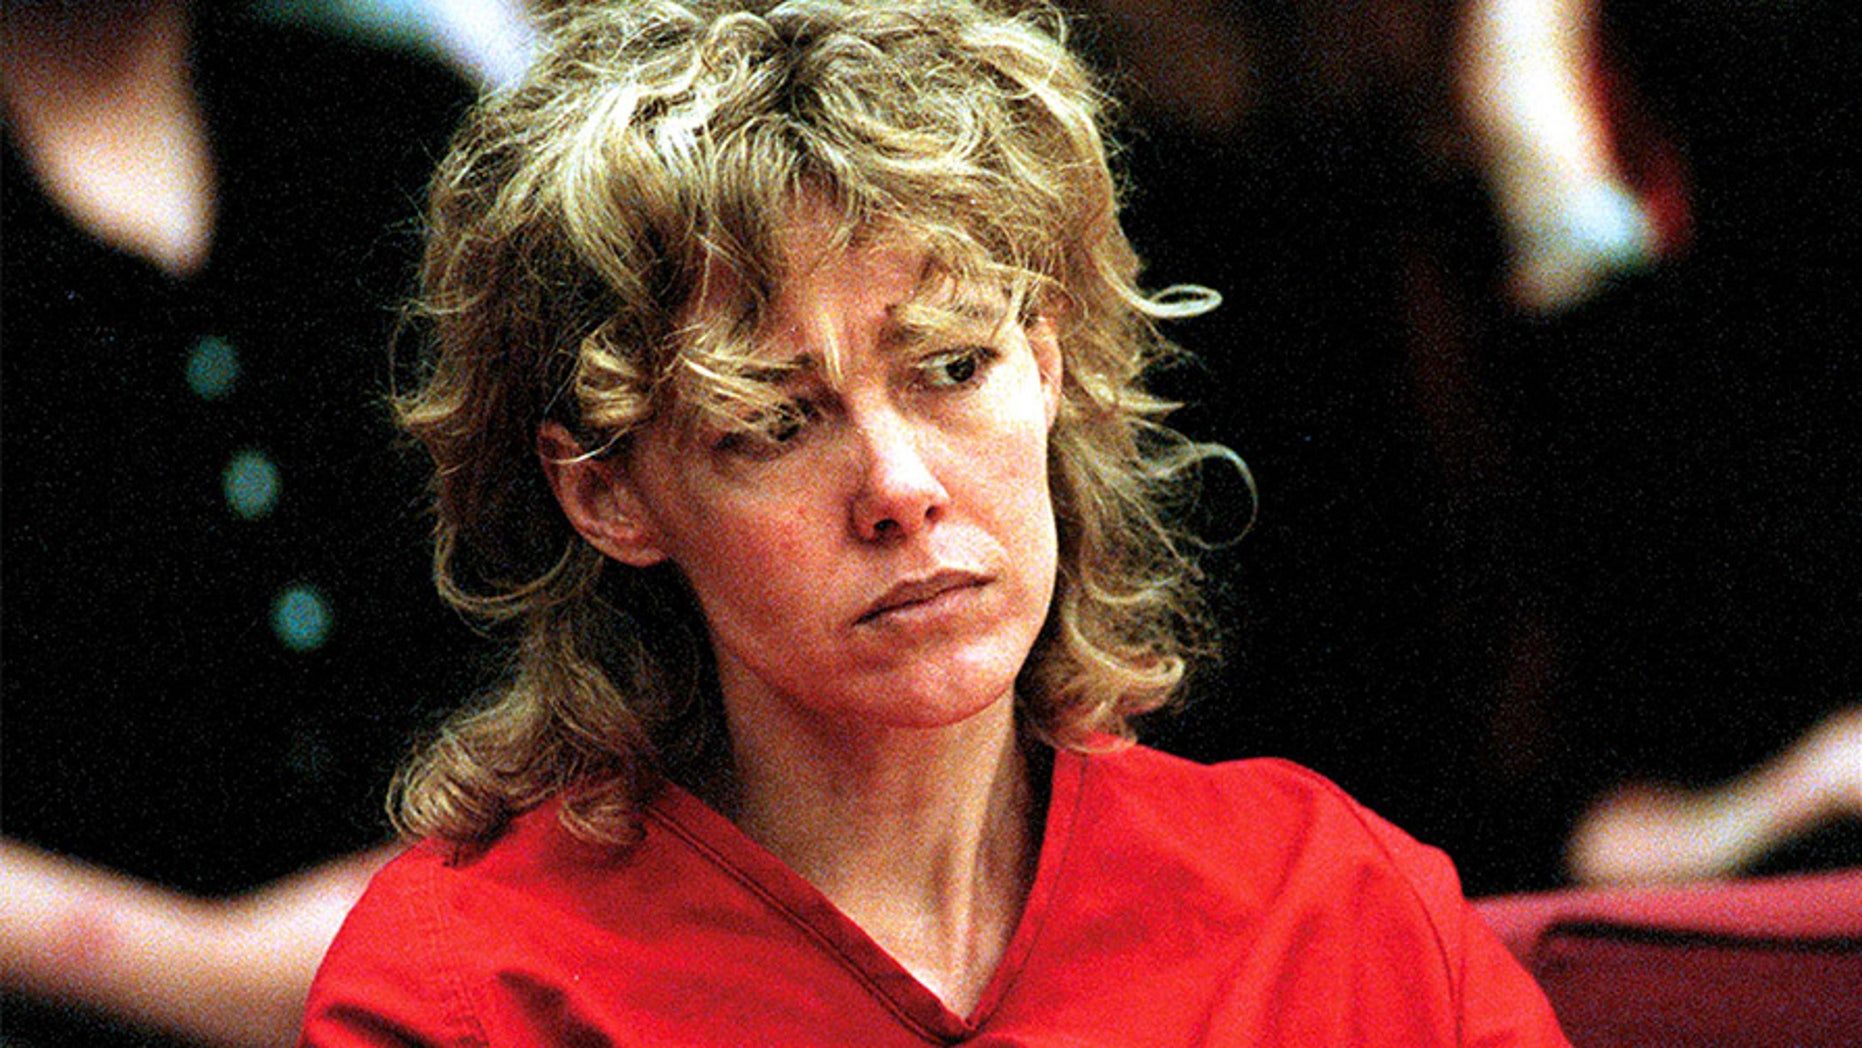 Former Seattle teacher Mary Kay Letourneau's affair with one of her ex-pupils caused a national scandal.